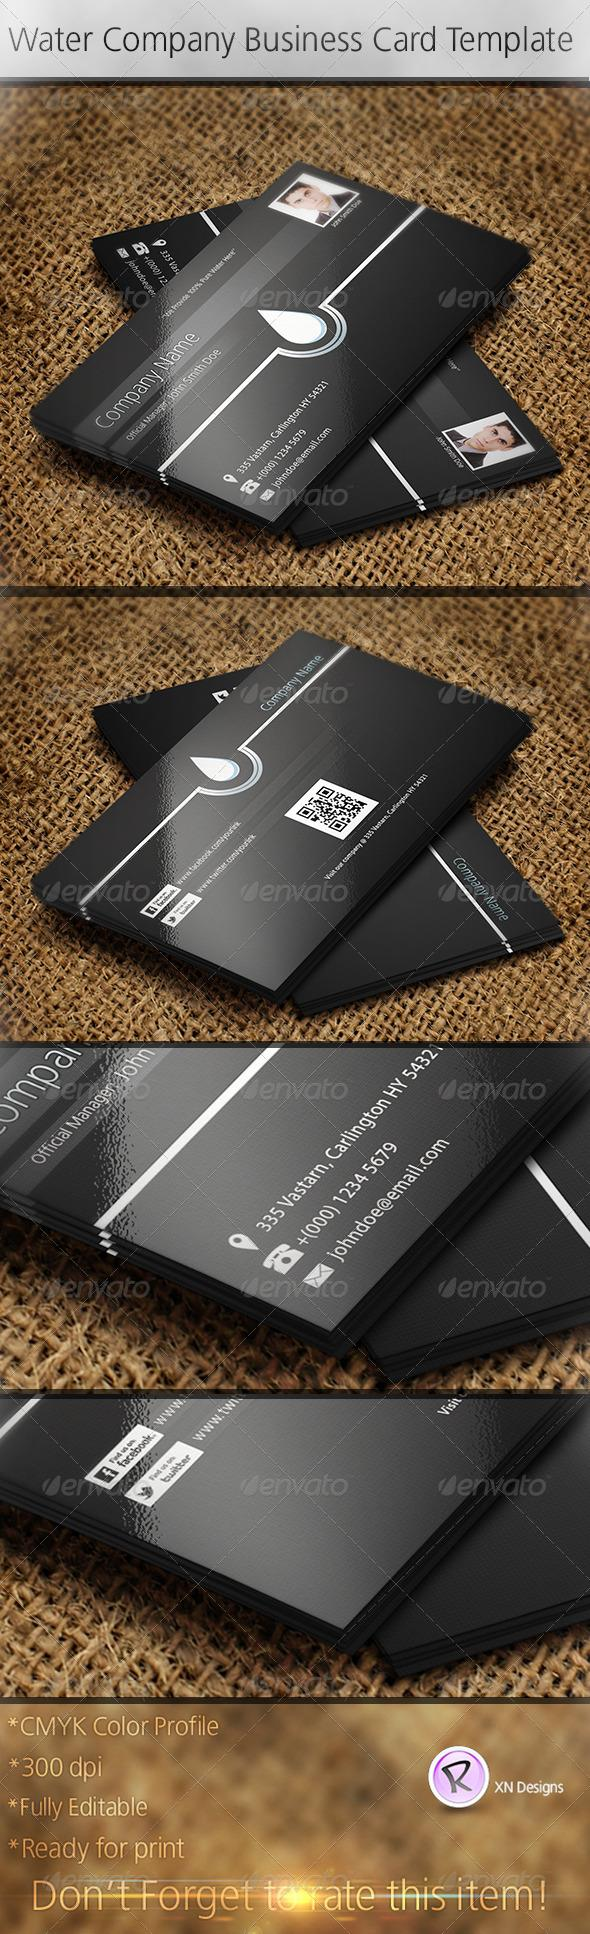 Water company business card template water company card templates buy water company business card template by xndesigns on graphicriver water company business card template features 2 psd files print ready with bleed colourmoves